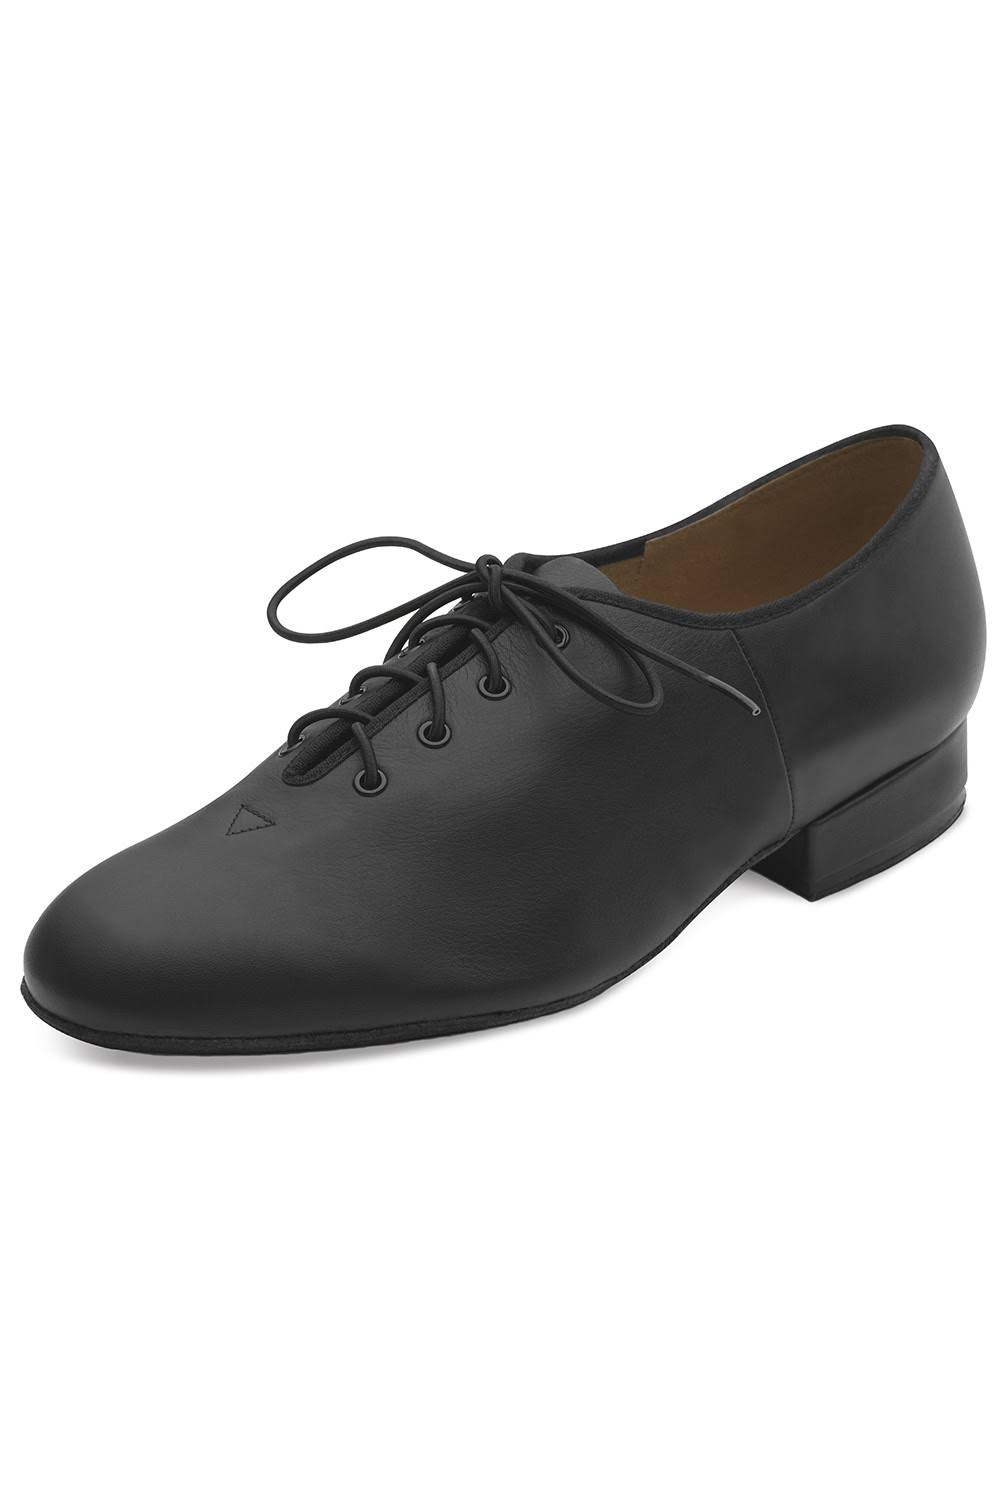 Bloch Jazz Oxford